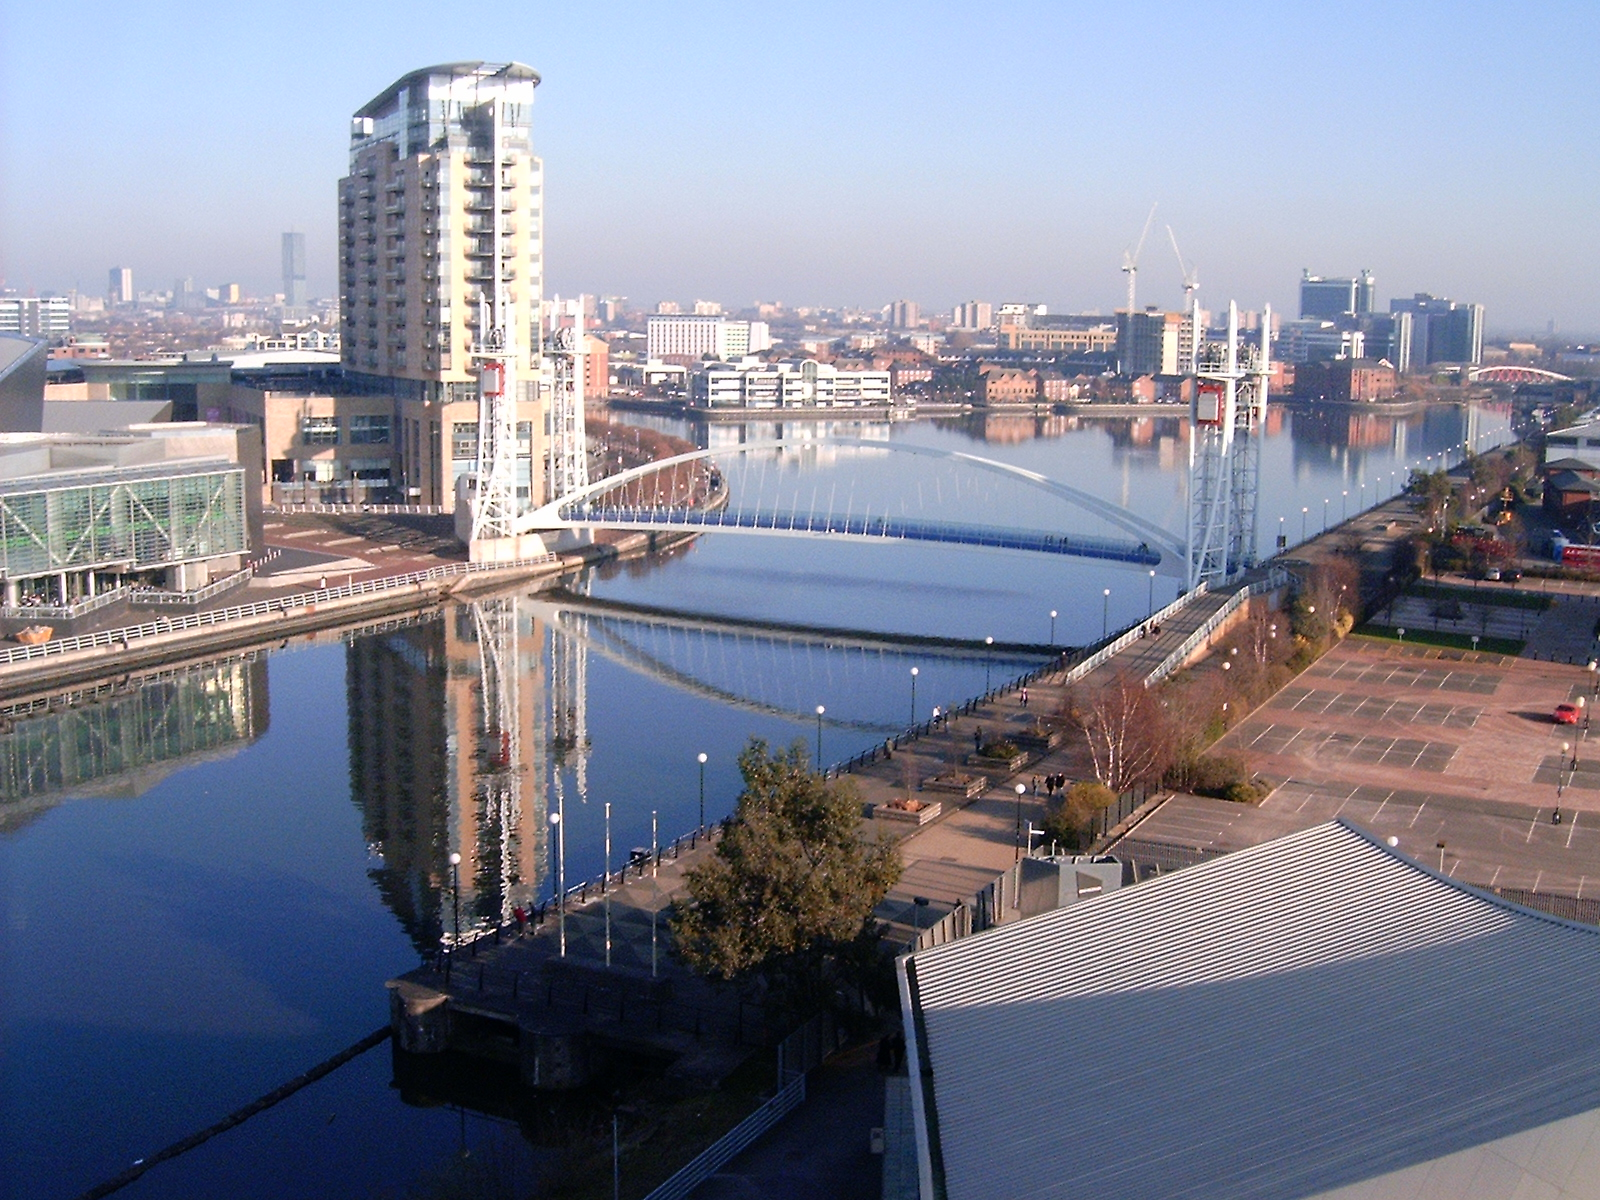 Salford_Quays_from_south_bank_of_MSC__2008.jpg?1566834753